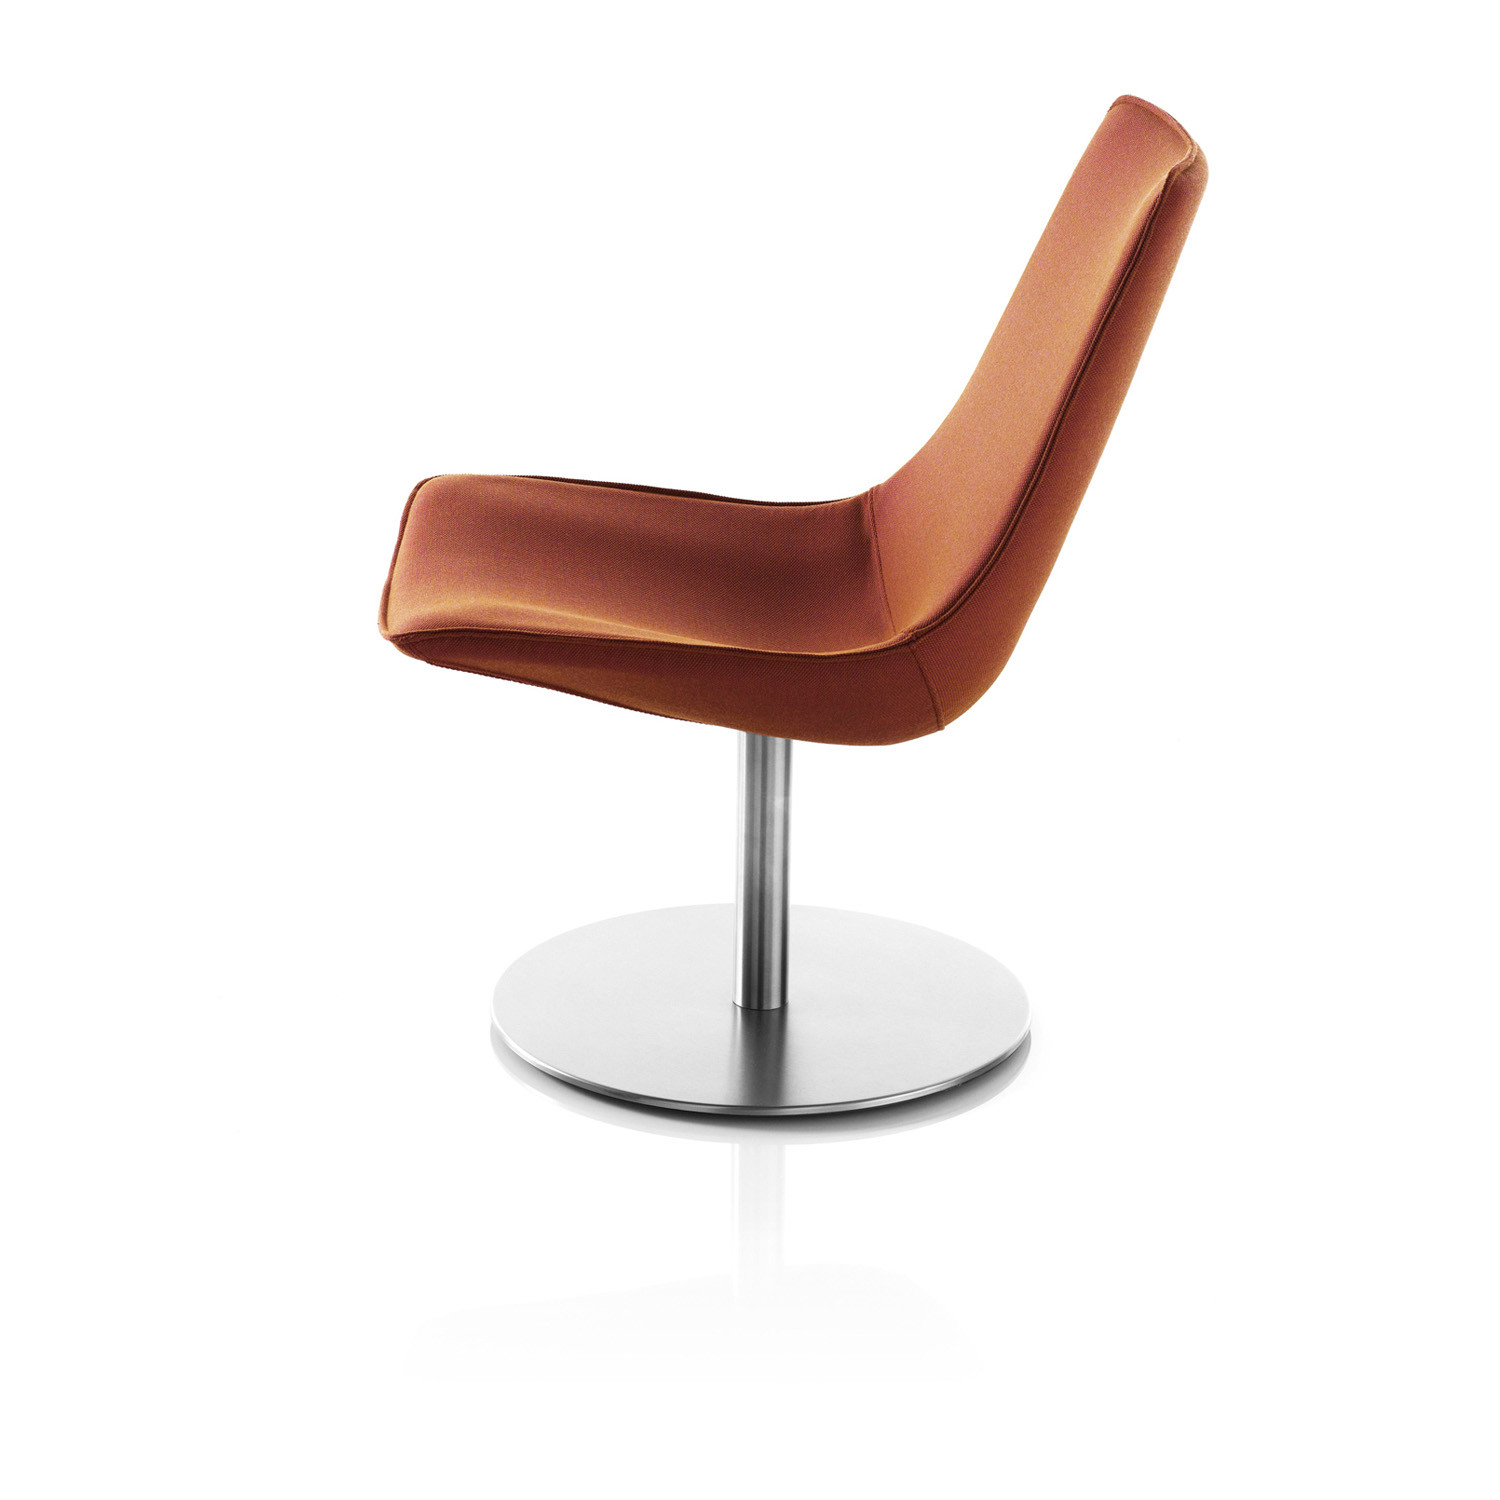 Comet Chair from Lammhults